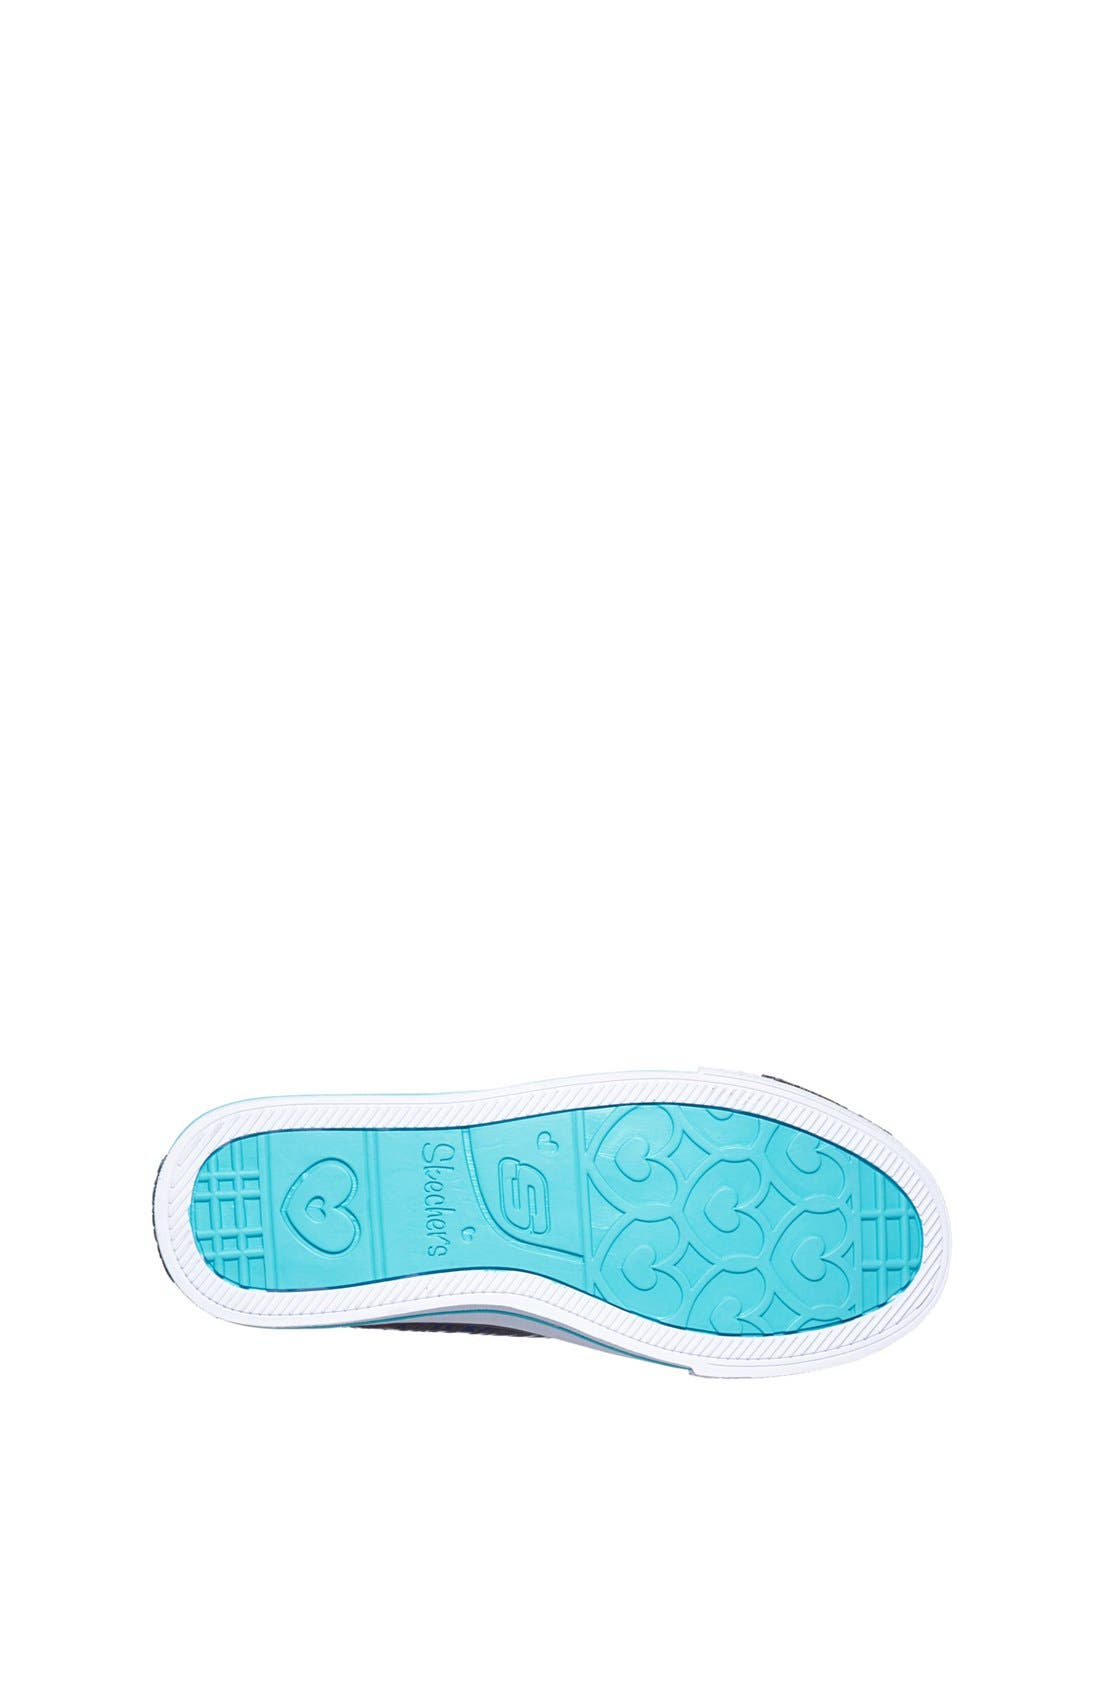 Alternate Image 4  - SKECHERS 'Shuffles - Gimme Glam' Light Up Sneaker (Toddler, Little Kid & Big Kid)